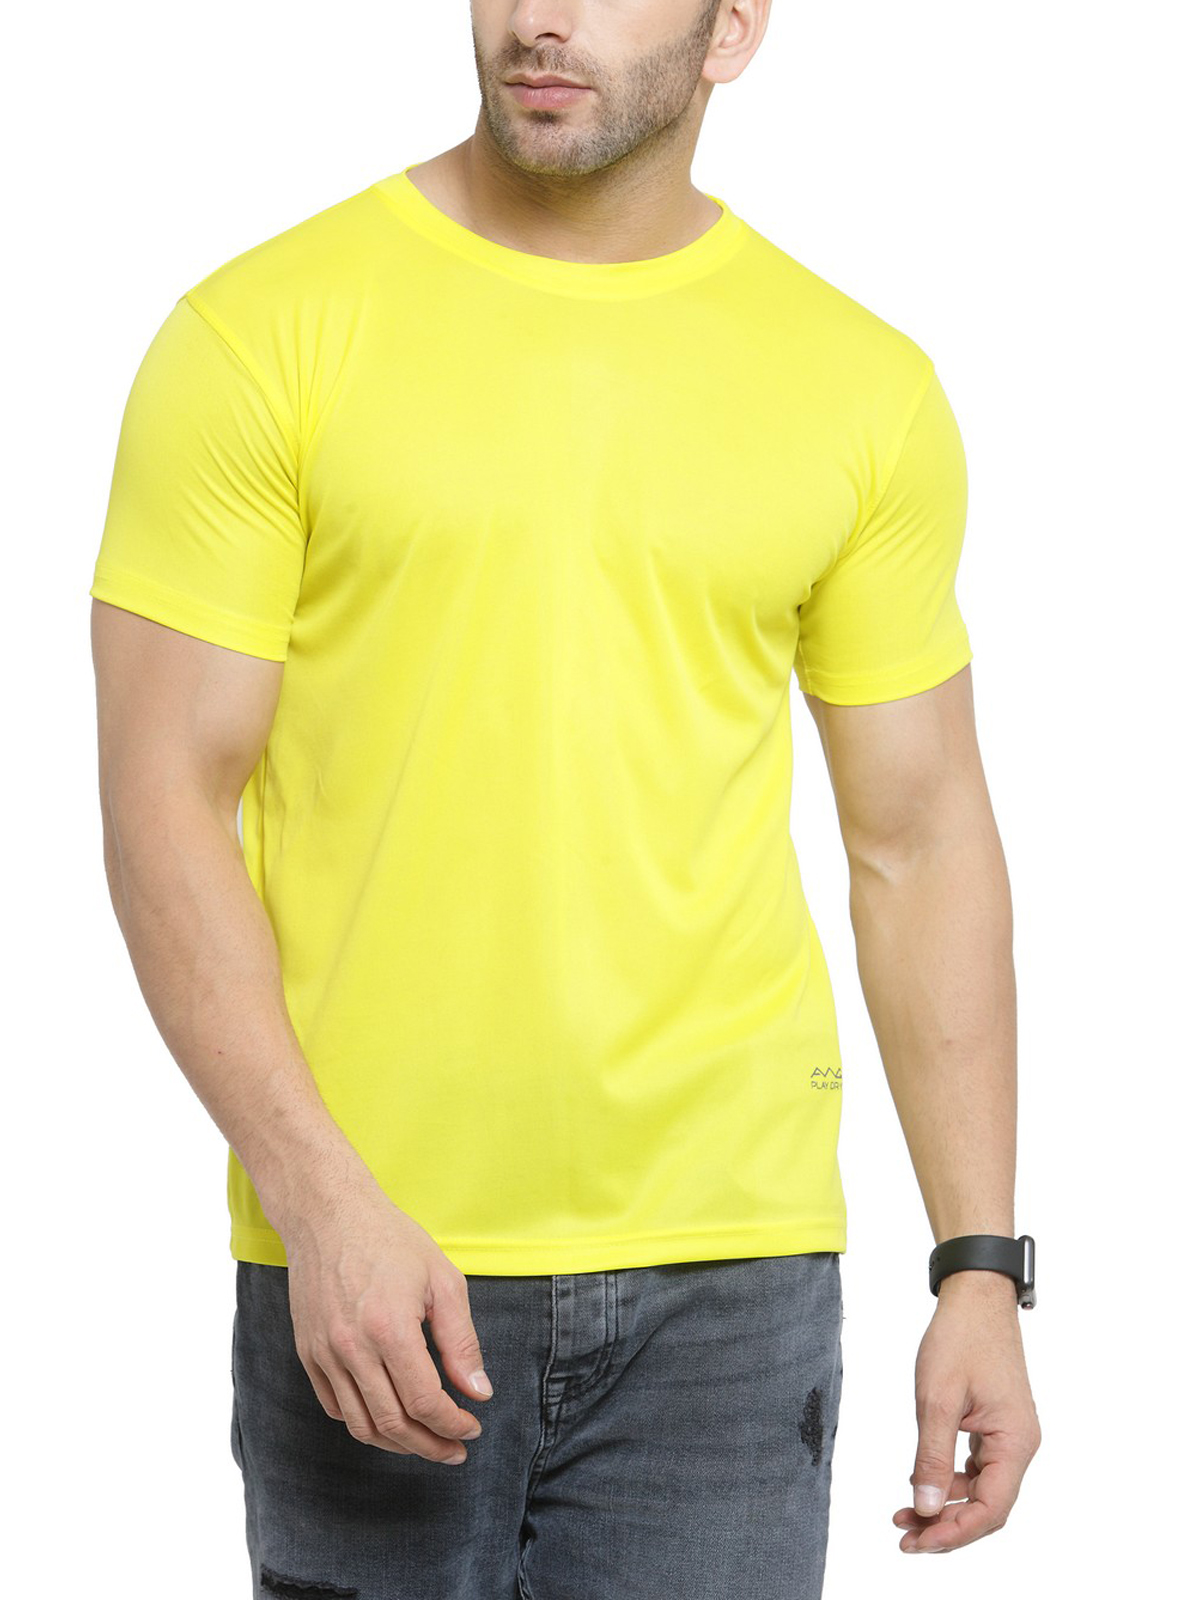 AWG Men's Yellow Jersey Dryfit Polyester Round Neck T-shirt